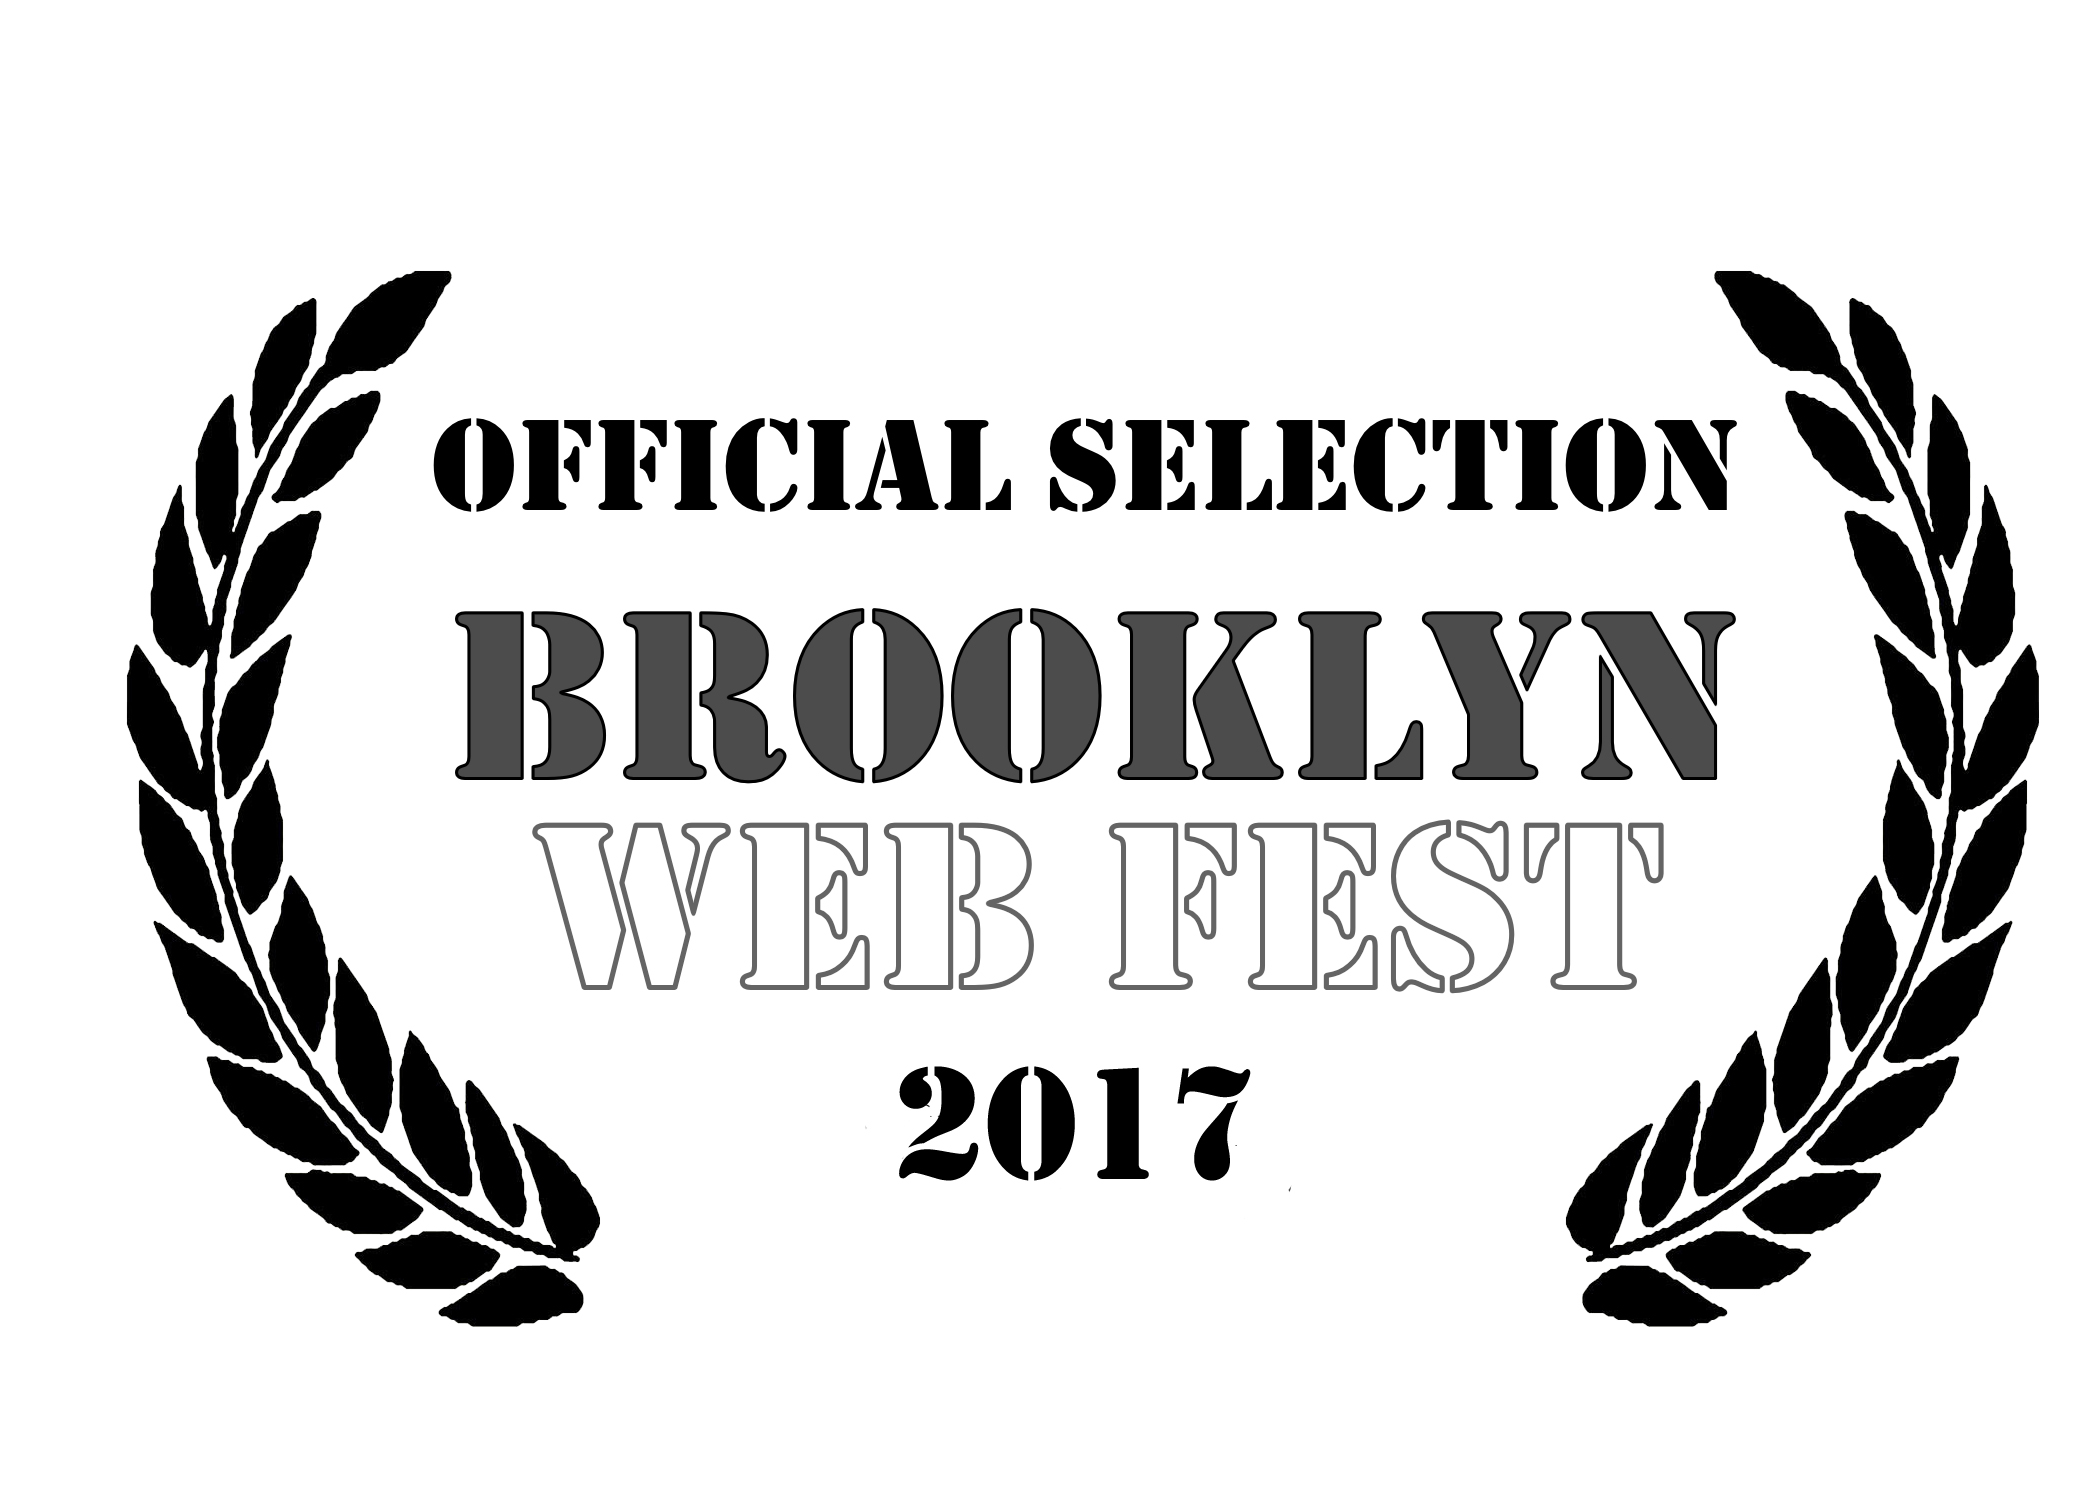 Woe Is She is an official selection at Brooklyn Web Fest! - We're excited to share our first 3 episodes with the world (or greater NYC area).*Take note: our screening is listed under our show's old moniker 'Lost And…'Screening info: Saturday October 7th, 1 PMClick here for Tickets and Schedule